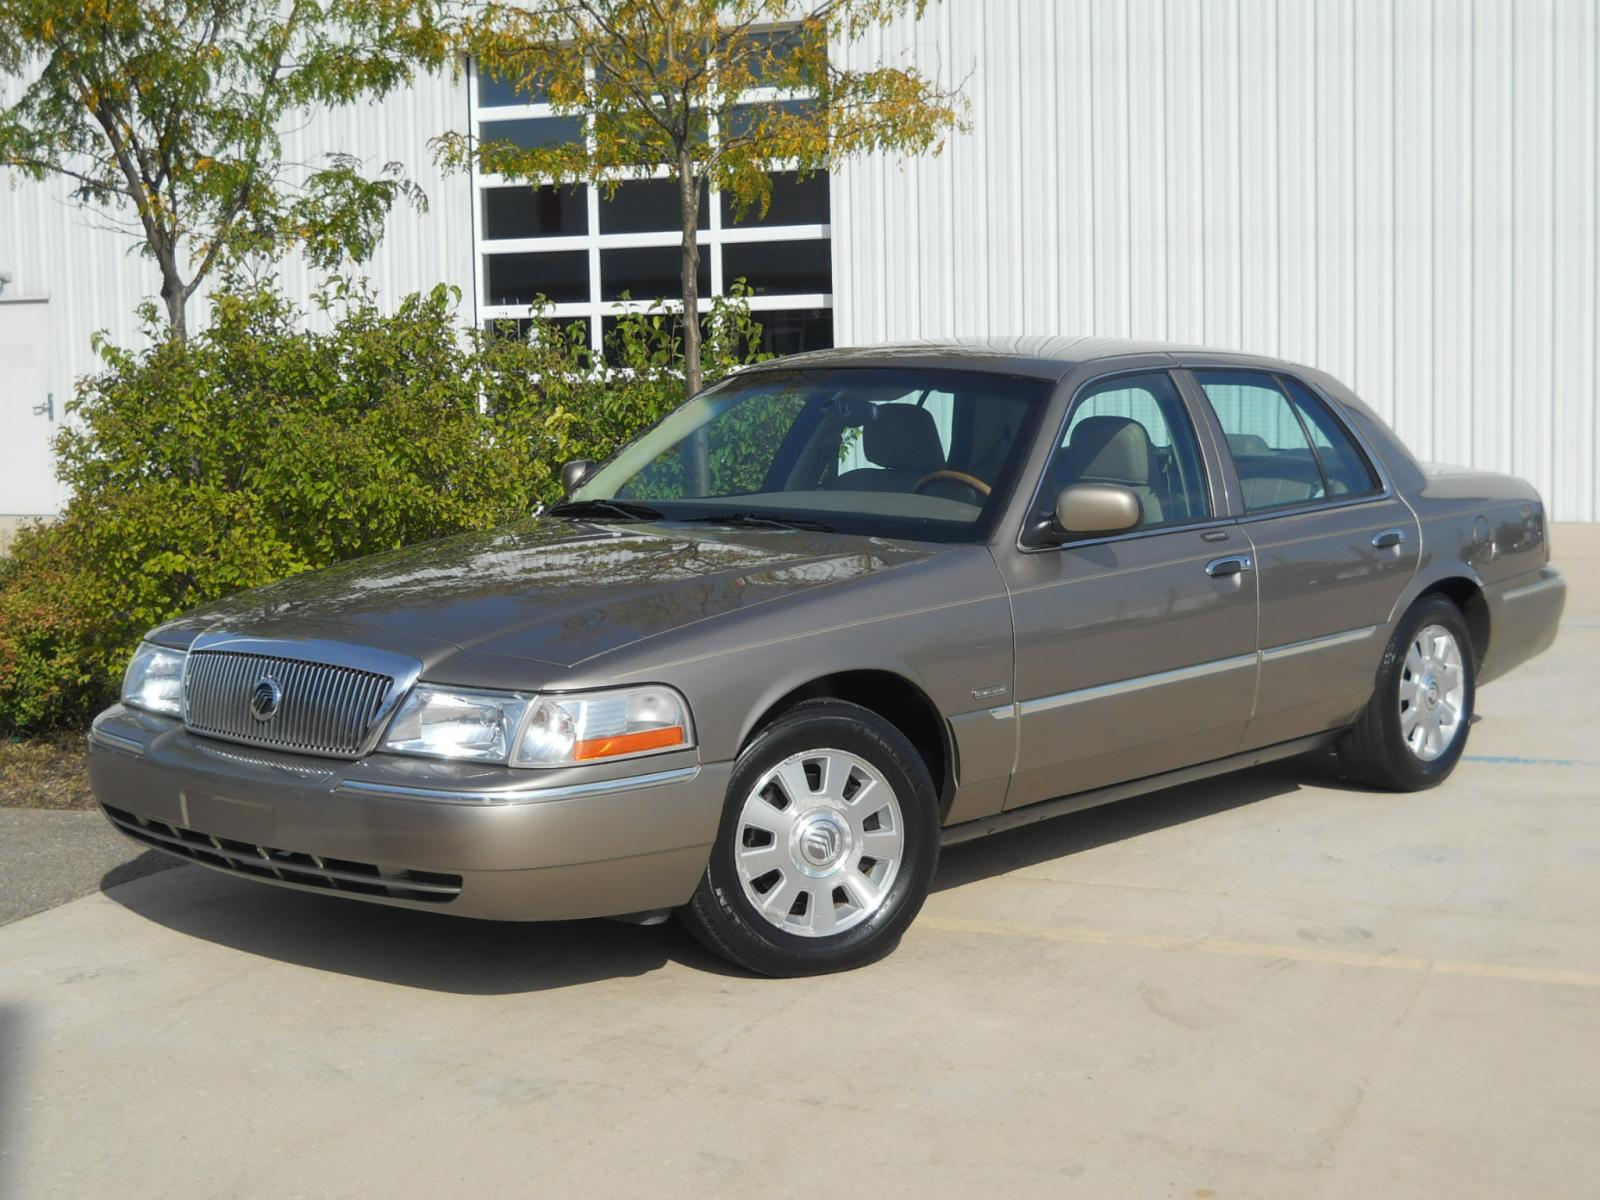 2004 Mercury Grand Marquis - Information And Photos